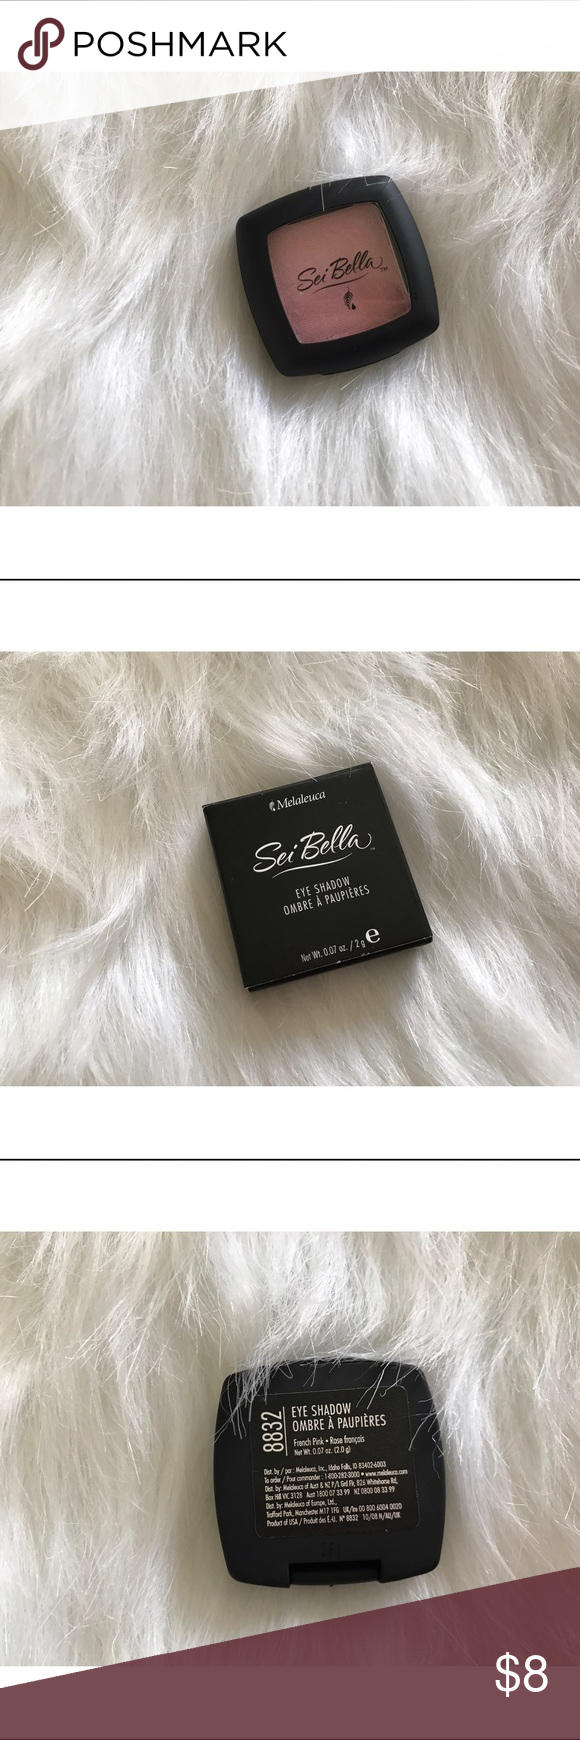 SEI BELLA EYESHADOW IN FRENCH PINK Pink boutique, Pink